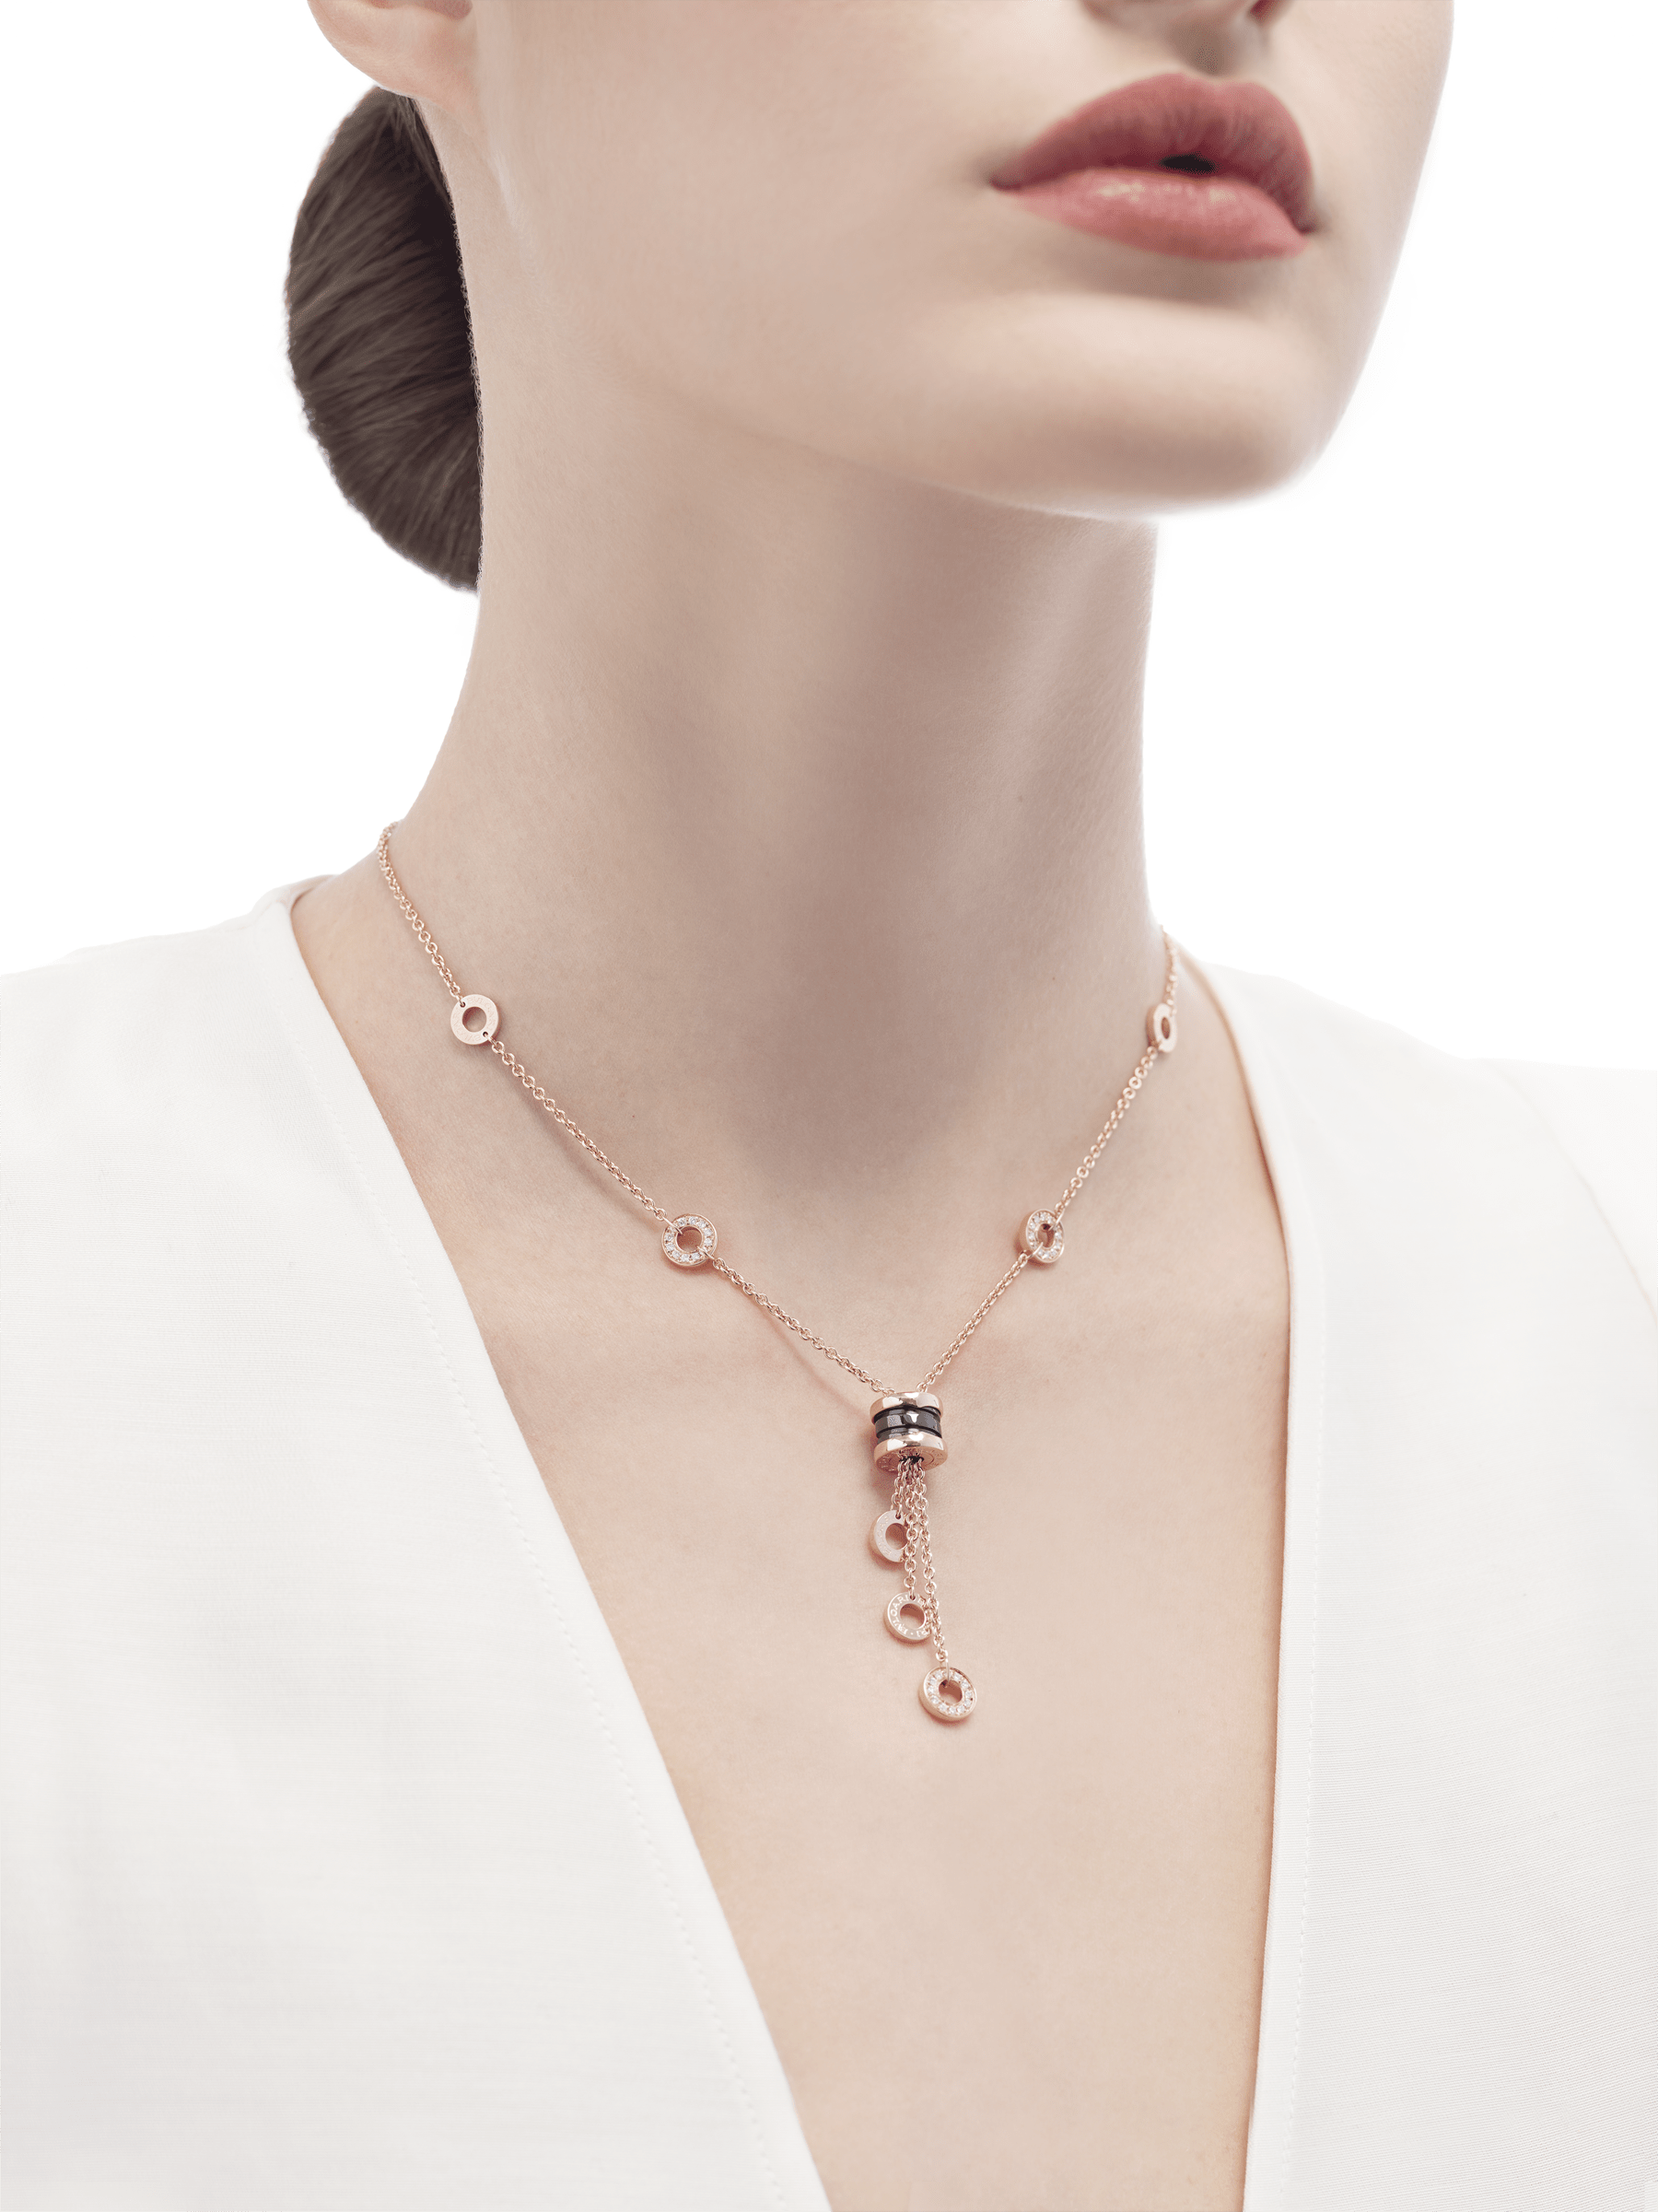 B.zero1 necklace with 18 kt rose gold chain set with pavé diamonds and pendant in 18 kt rose gold and black ceramic. 347578 image 3